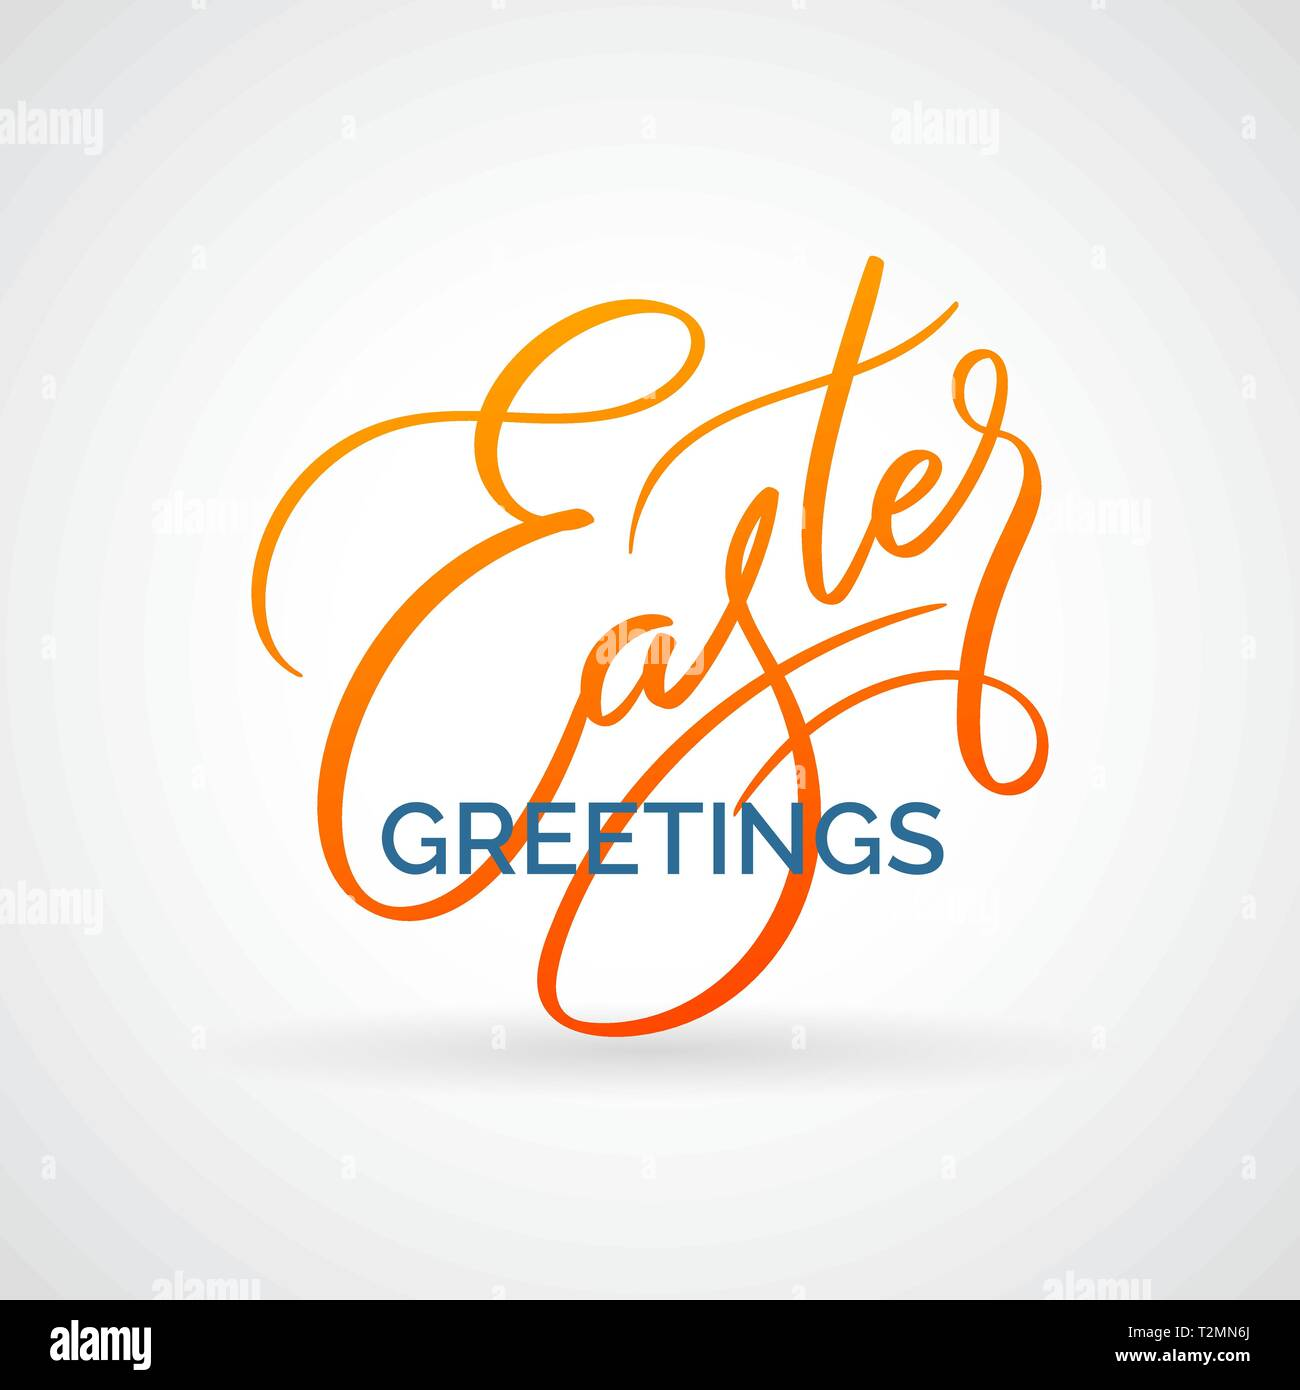 Easter greetings vector typography, calligraphy, lettering, hand